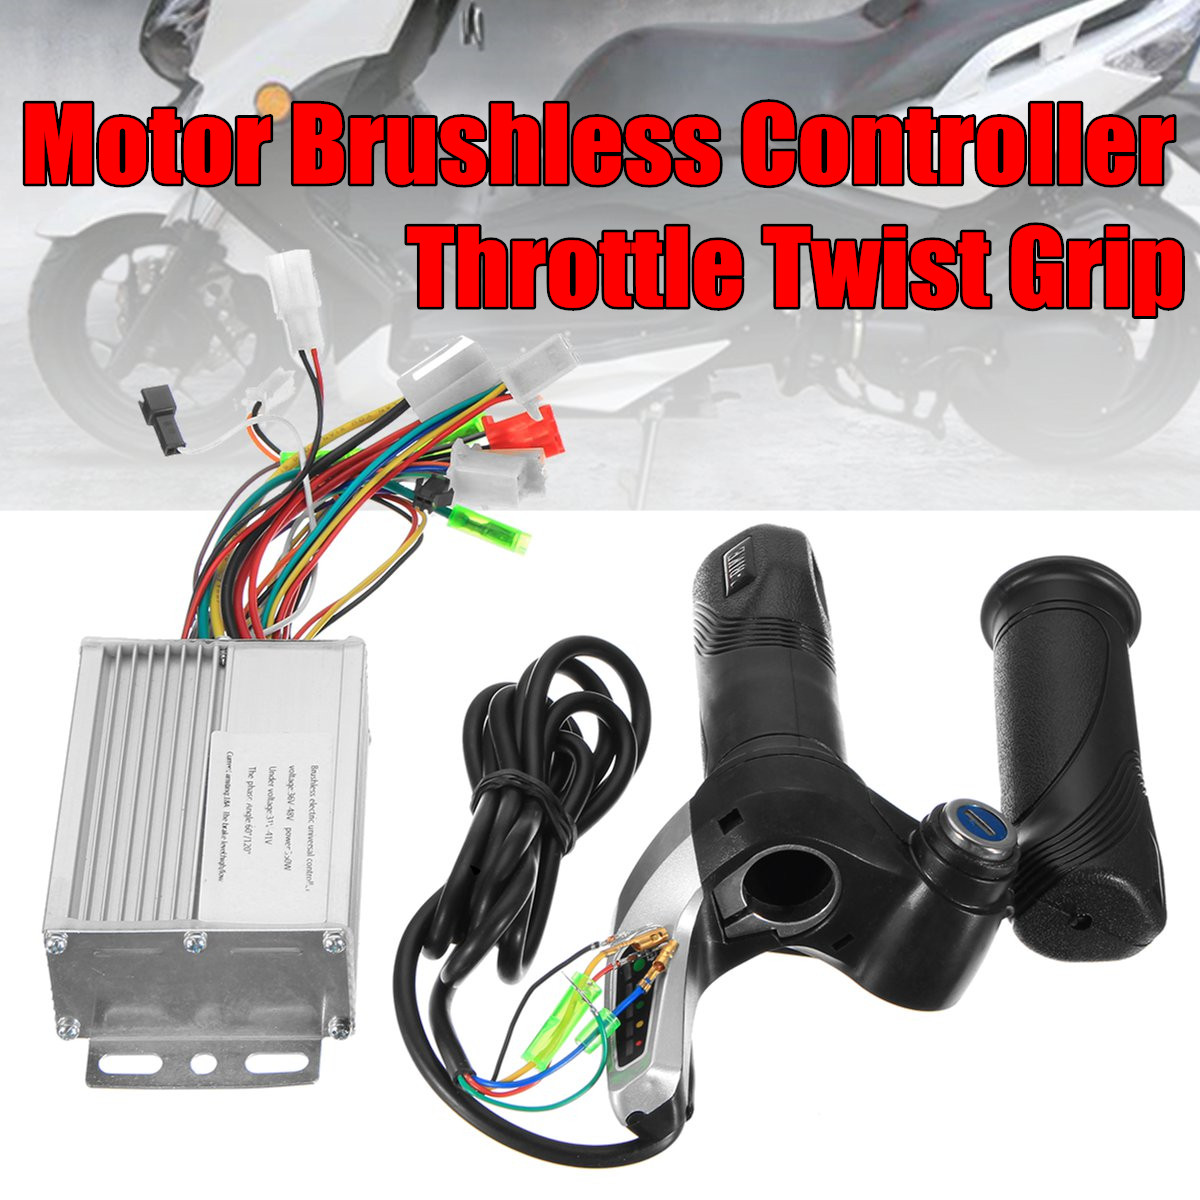 Sctooter  36V 350W motor brushless controller 3 Phase Line + Throttle twist grip electric bike scooter speed control boxSctooter  36V 350W motor brushless controller 3 Phase Line + Throttle twist grip electric bike scooter speed control box